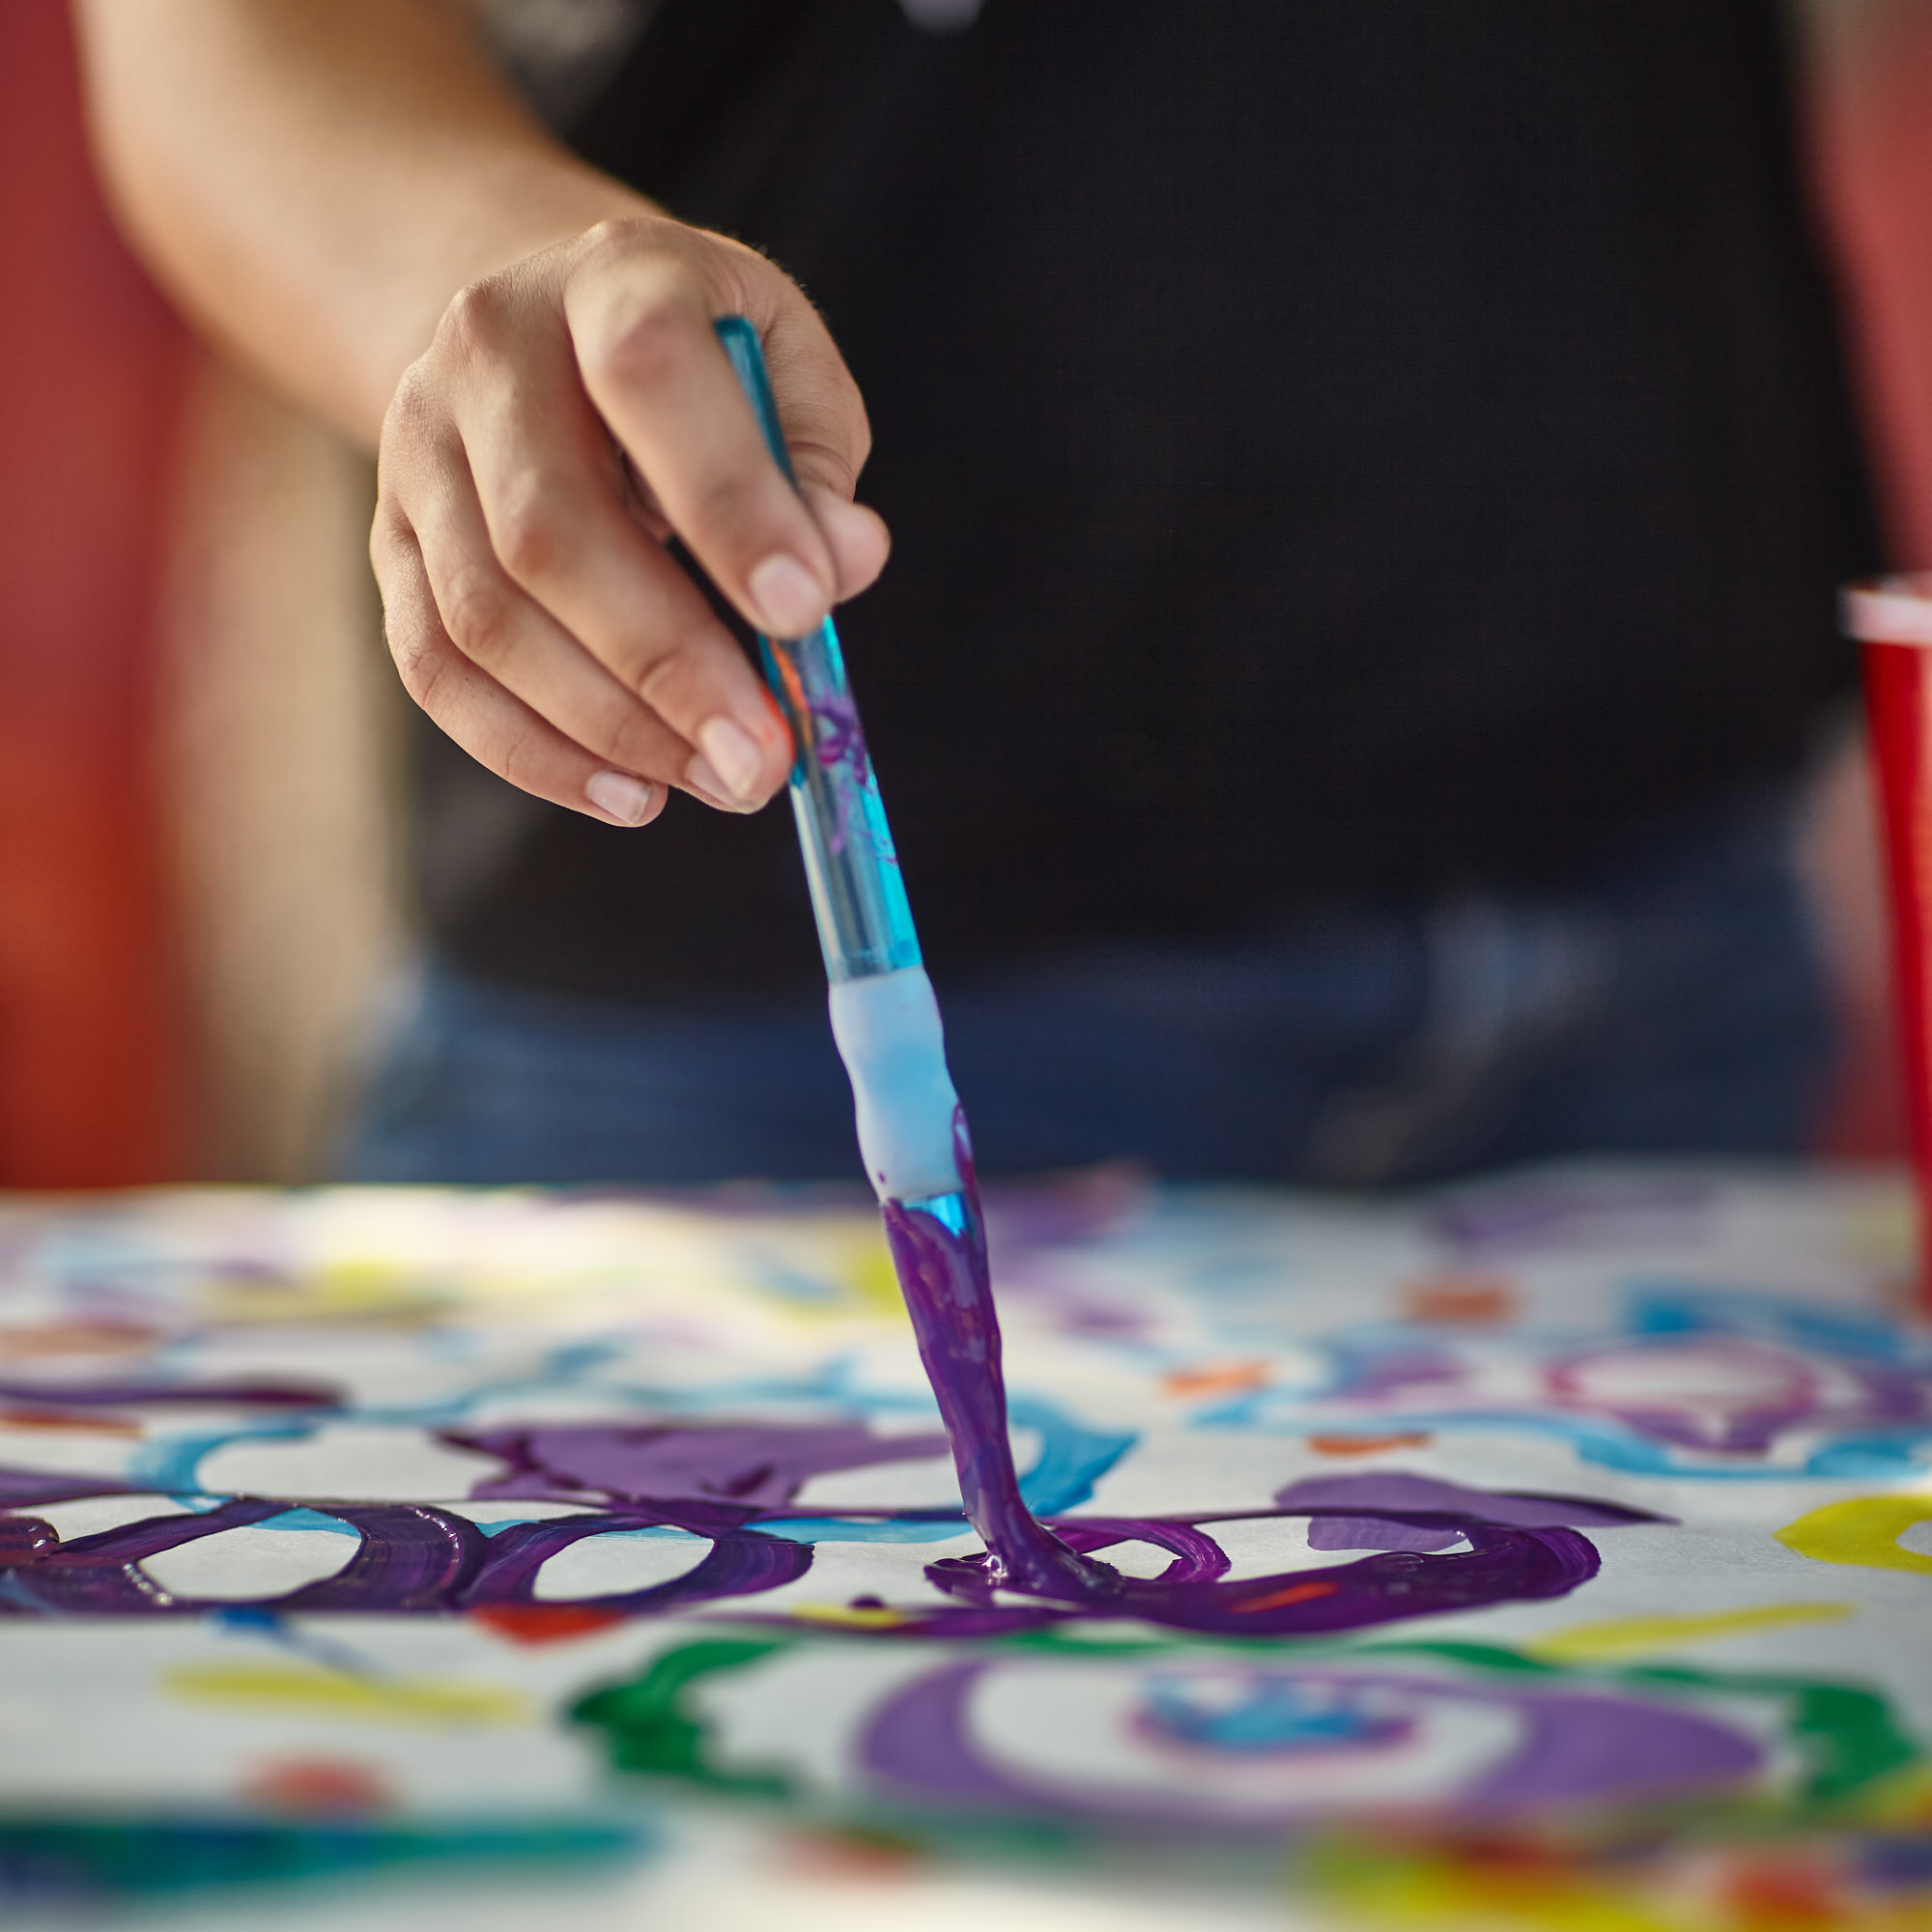 A close up of a hand with a paintbrush painting purple lines.